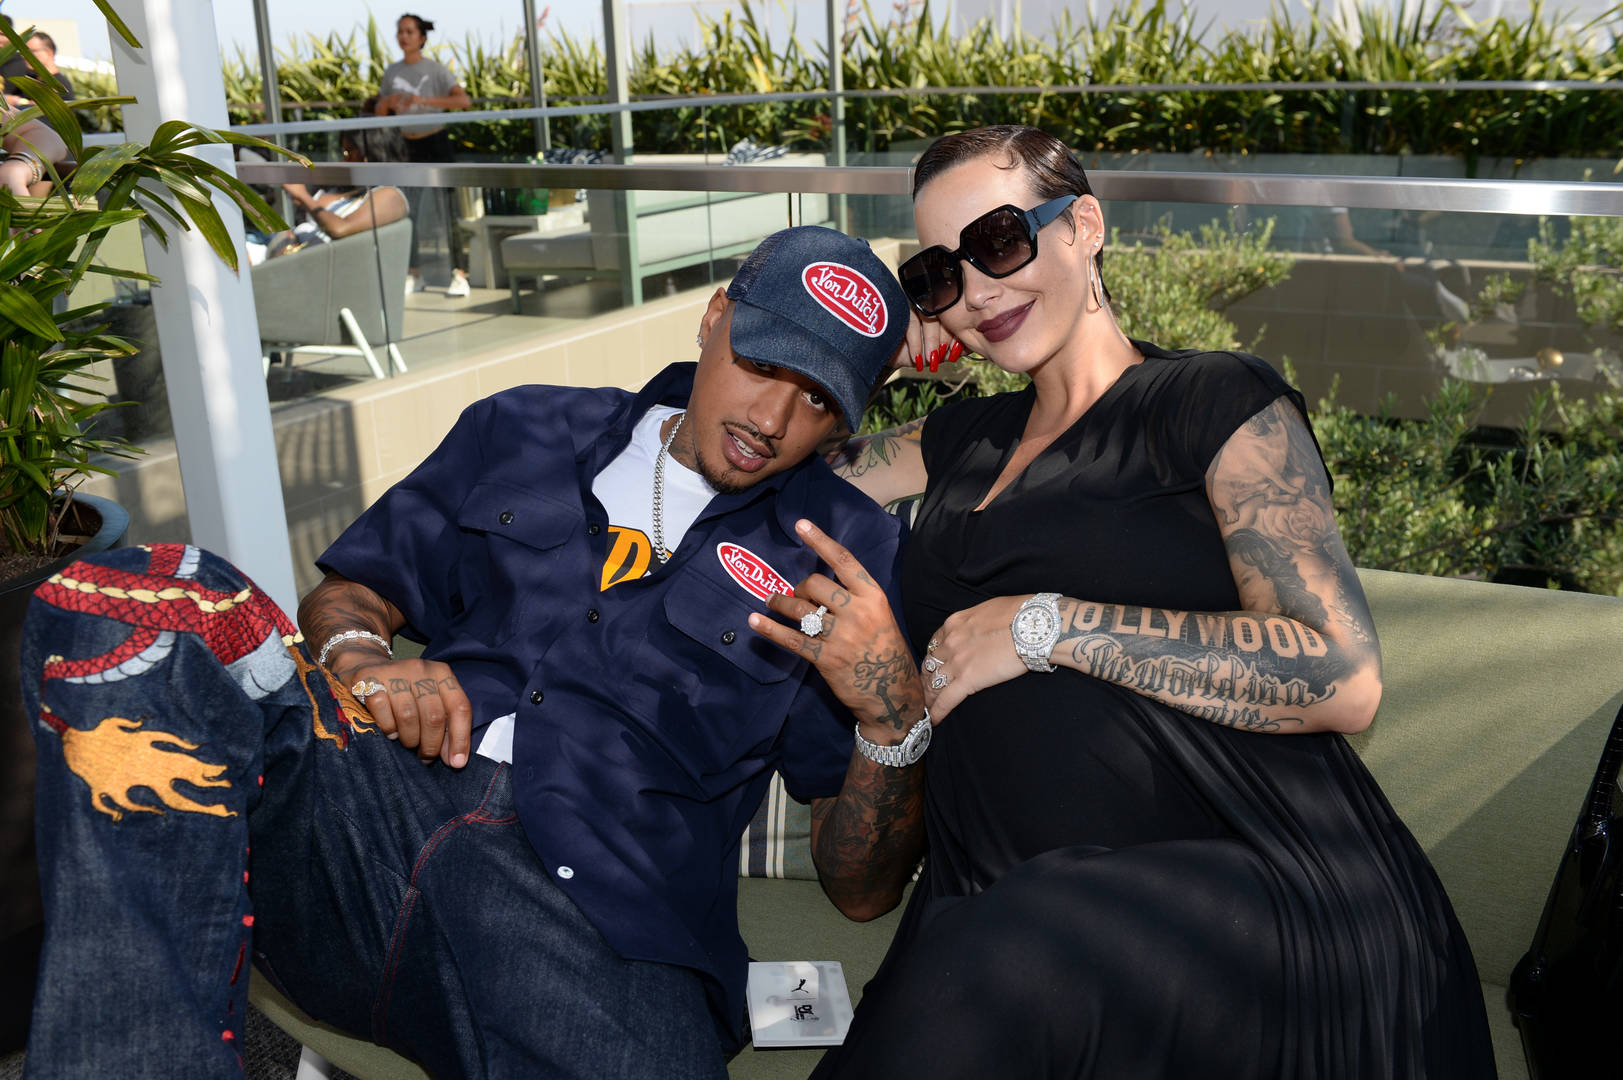 """Amber Rose Details Further Why She Dropped Out Of SlutWalk: """"F*ck Fake Friends"""""""